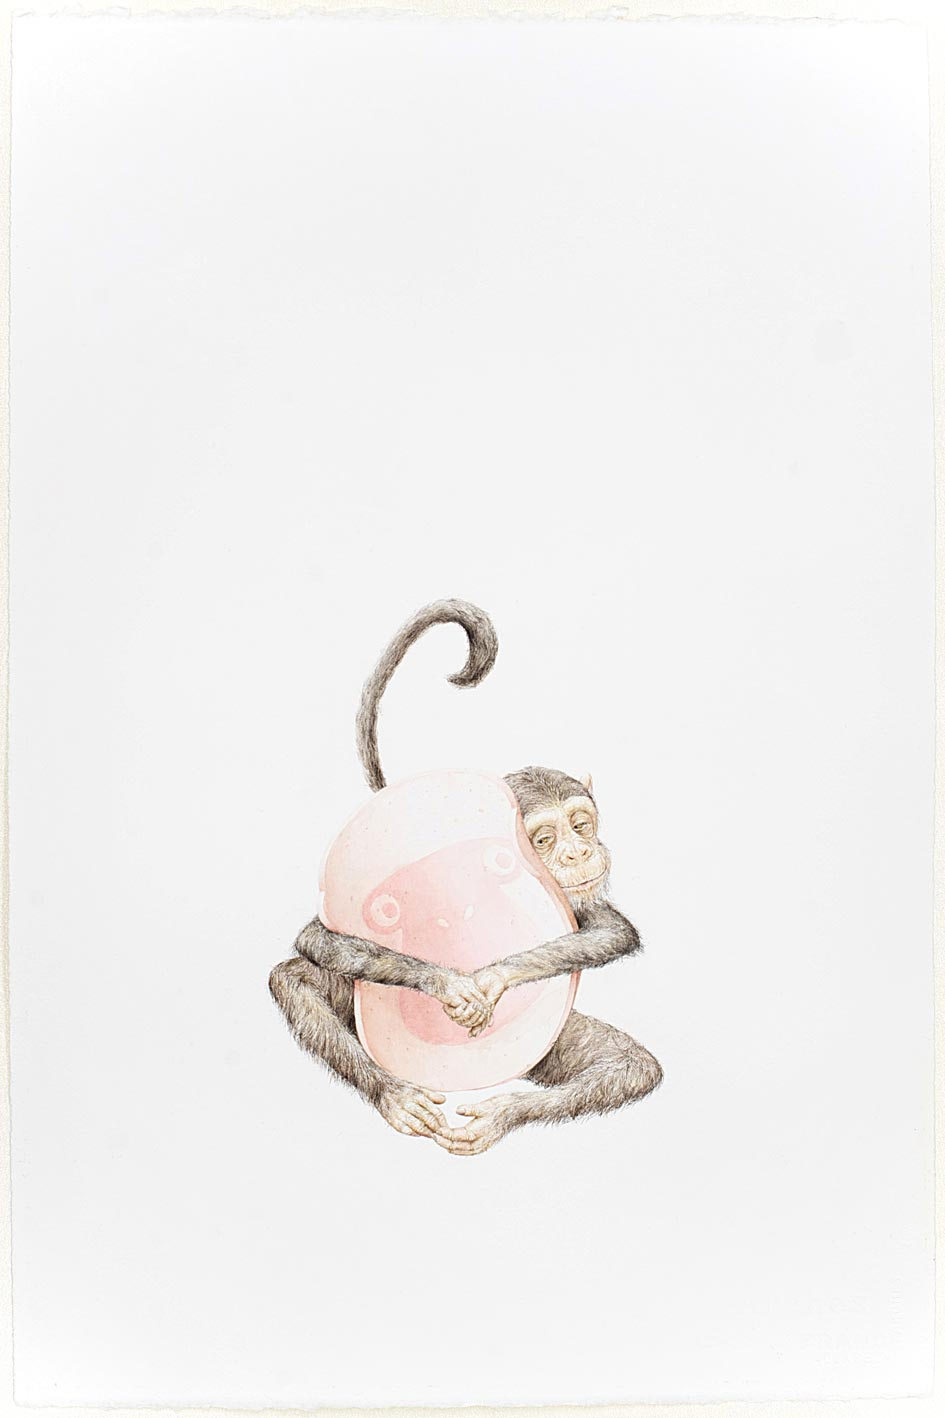 © LARS HINRICHS, UNTITLED (MONKEY), 2011, AQUARELLE, 56 X 38 CM